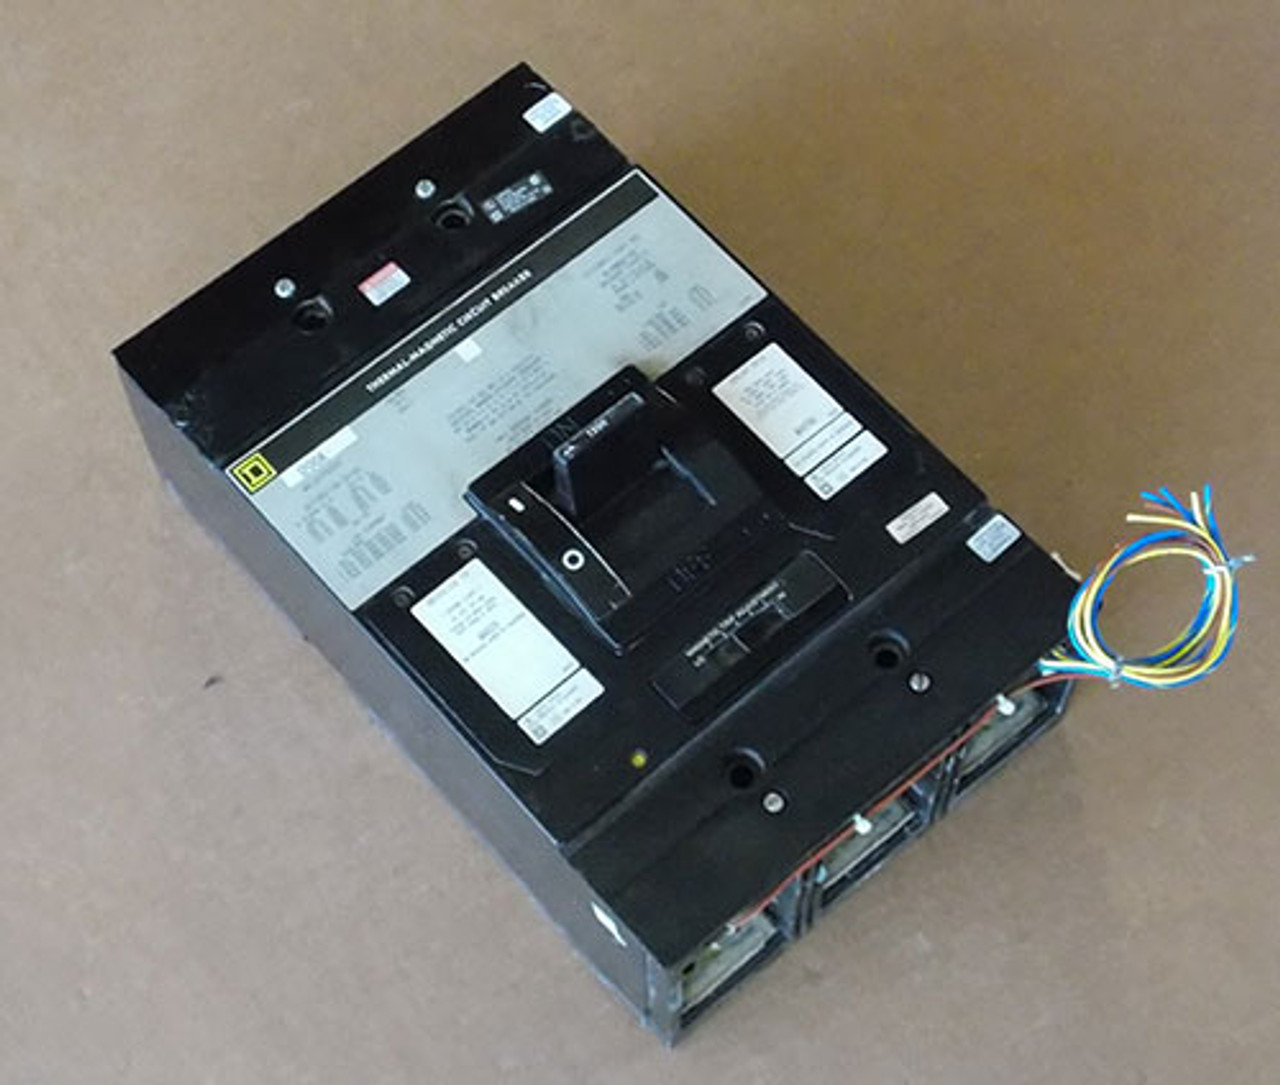 Square D MHL3612001287 3P 1200A 600V Molded Case Switch - Used